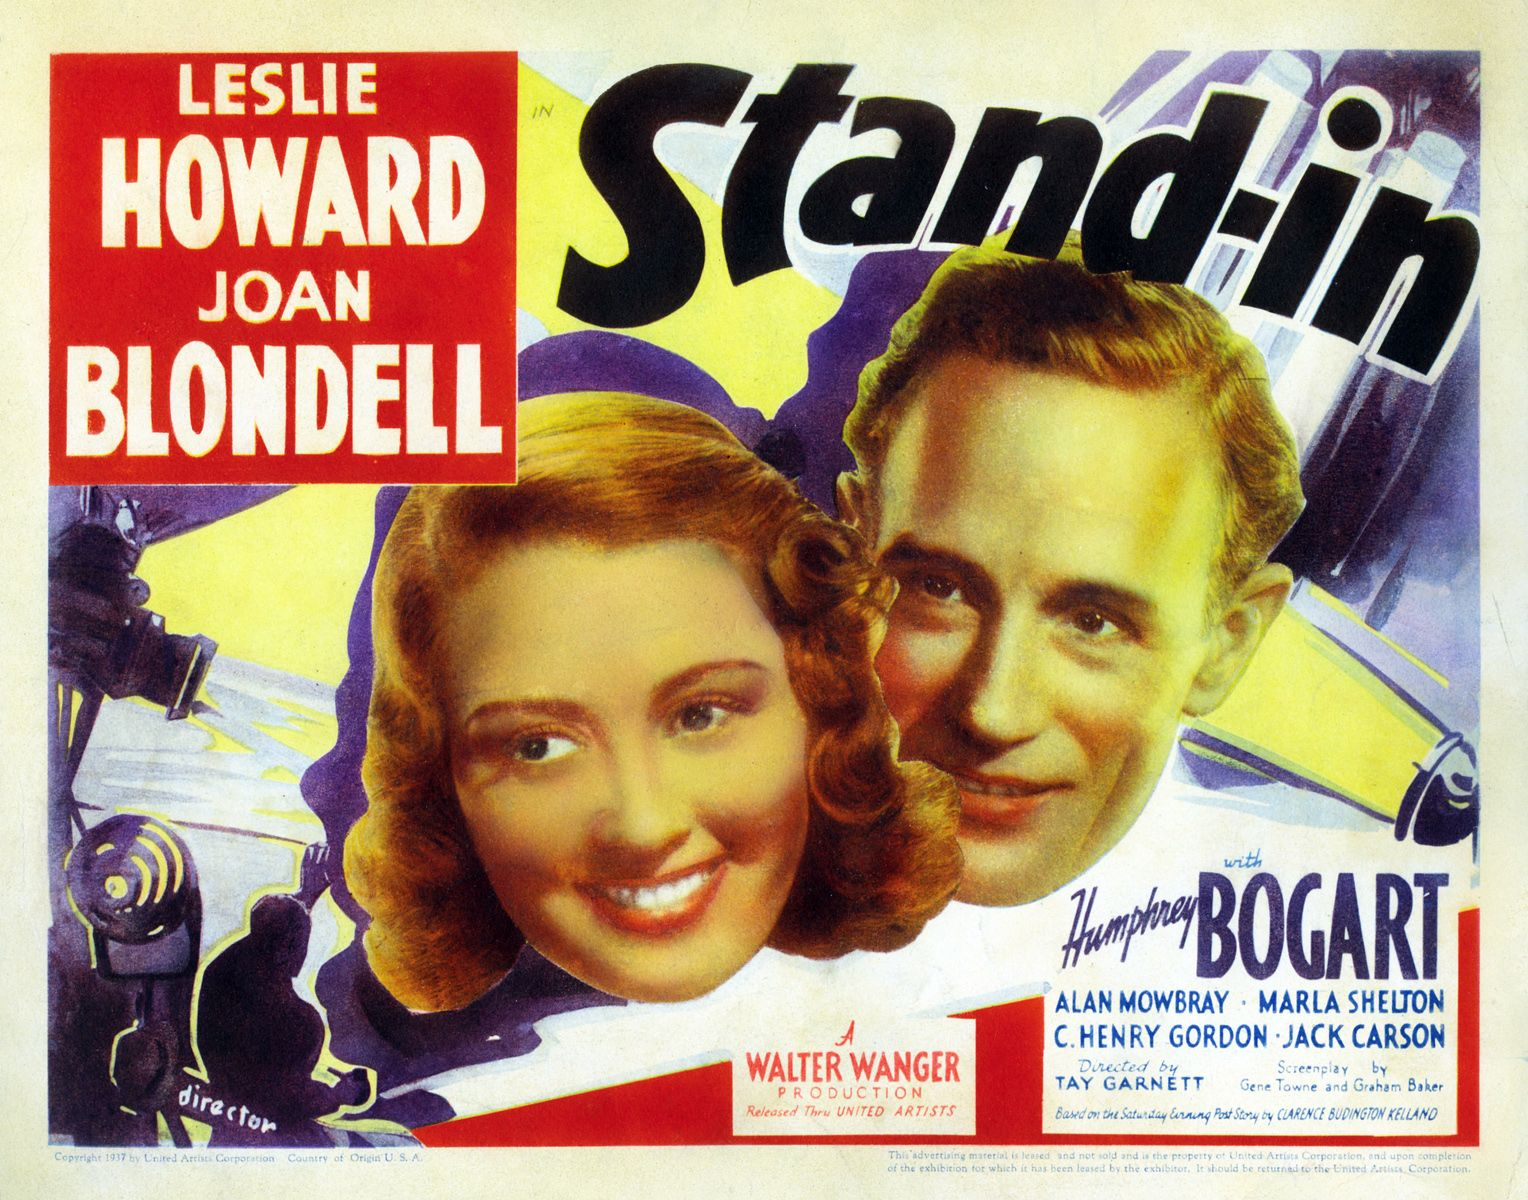 Stand In Leslie Howard Humphrey Bogart And Joan Blondell 1937 Leslie Howard Humphrey Bogart Bogart Movies